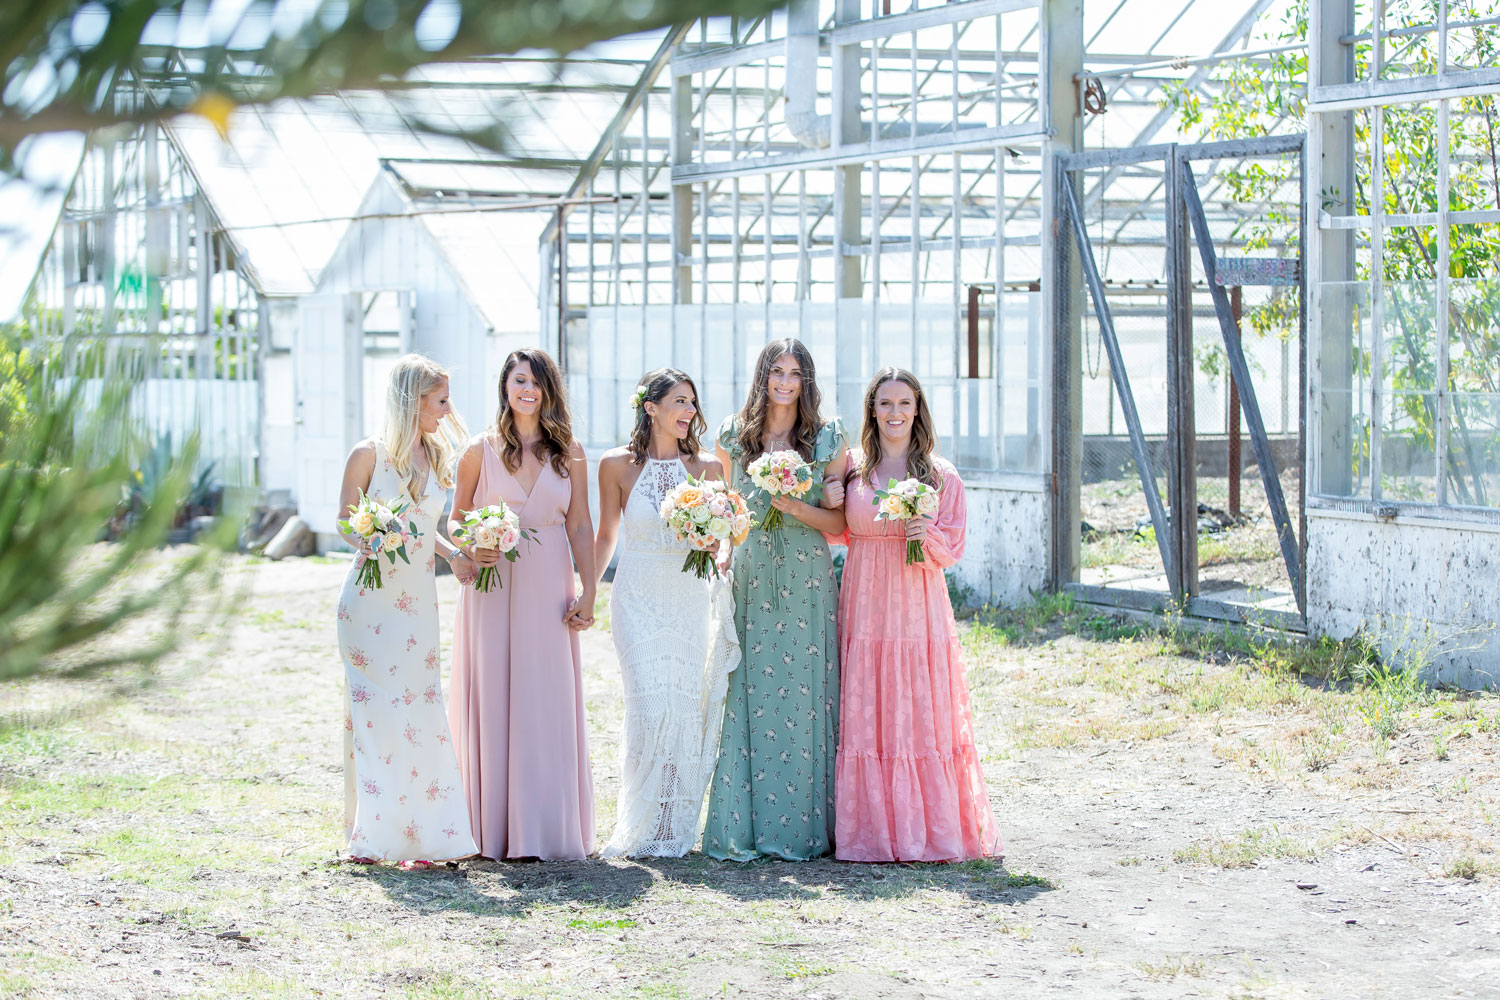 mismatched bridesmaids in different color dresses in varying styles